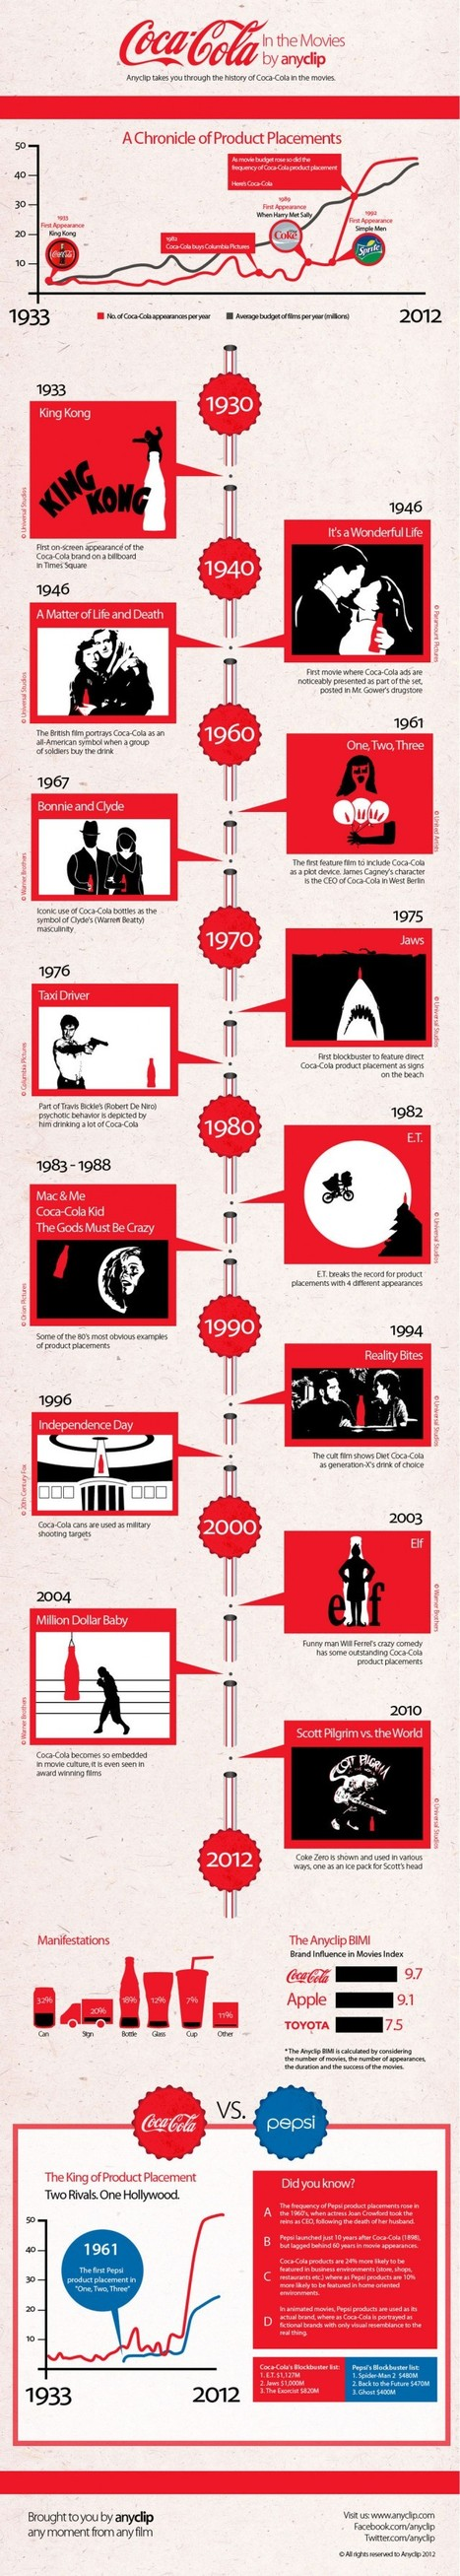 Coca-Cola and the Movies [INFOGRAPHIC]   #AusELT Links   Scoop.it